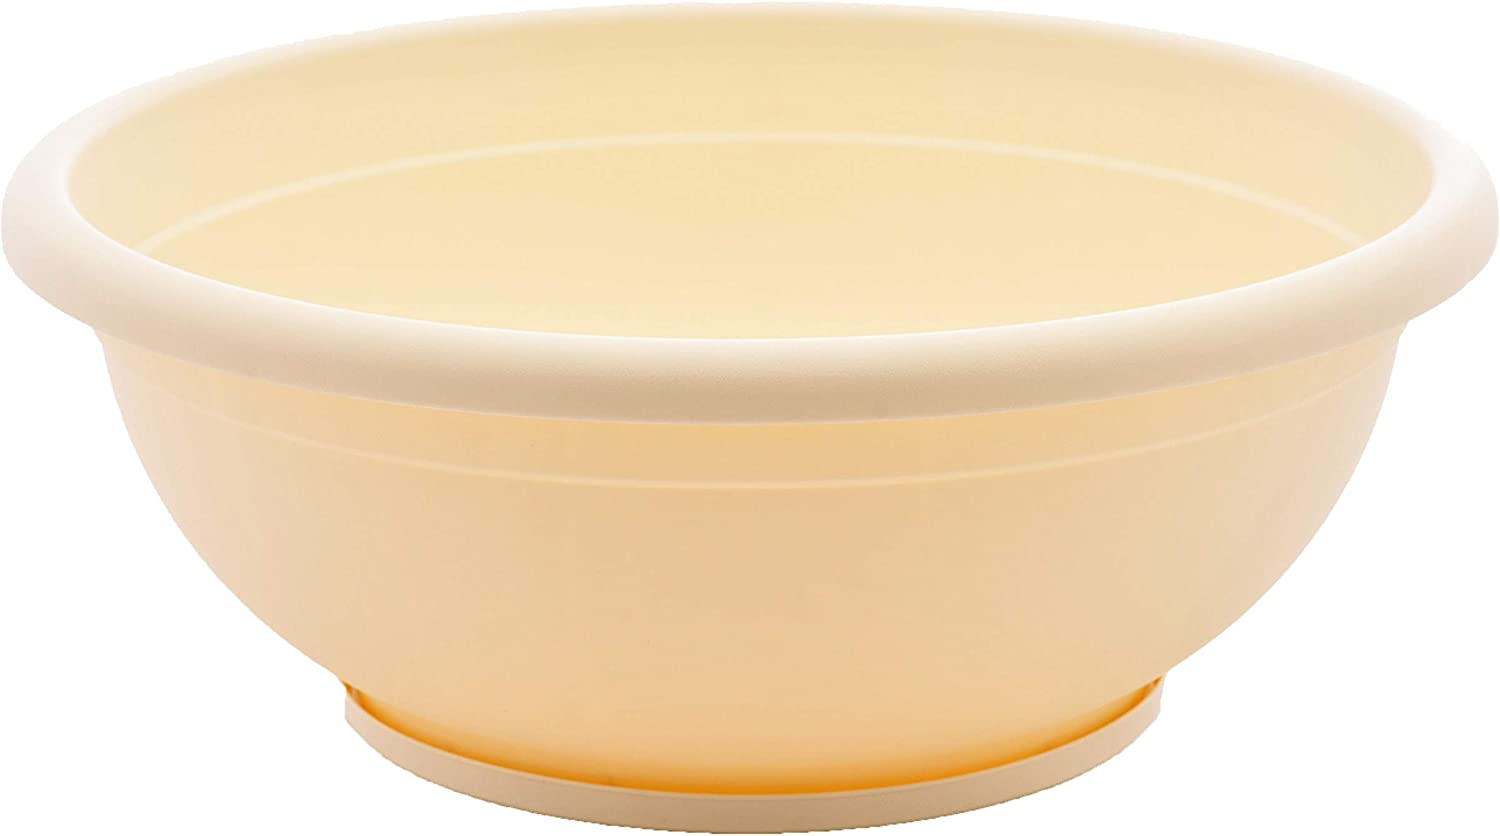 TABOR TOOLS VEN307 Plastic Planter Bowl, Garden Bowl with Attached Drainage Tray, for Indoor and Outdoor Use, Round Ø 12 Inch (Color: Ivory White)